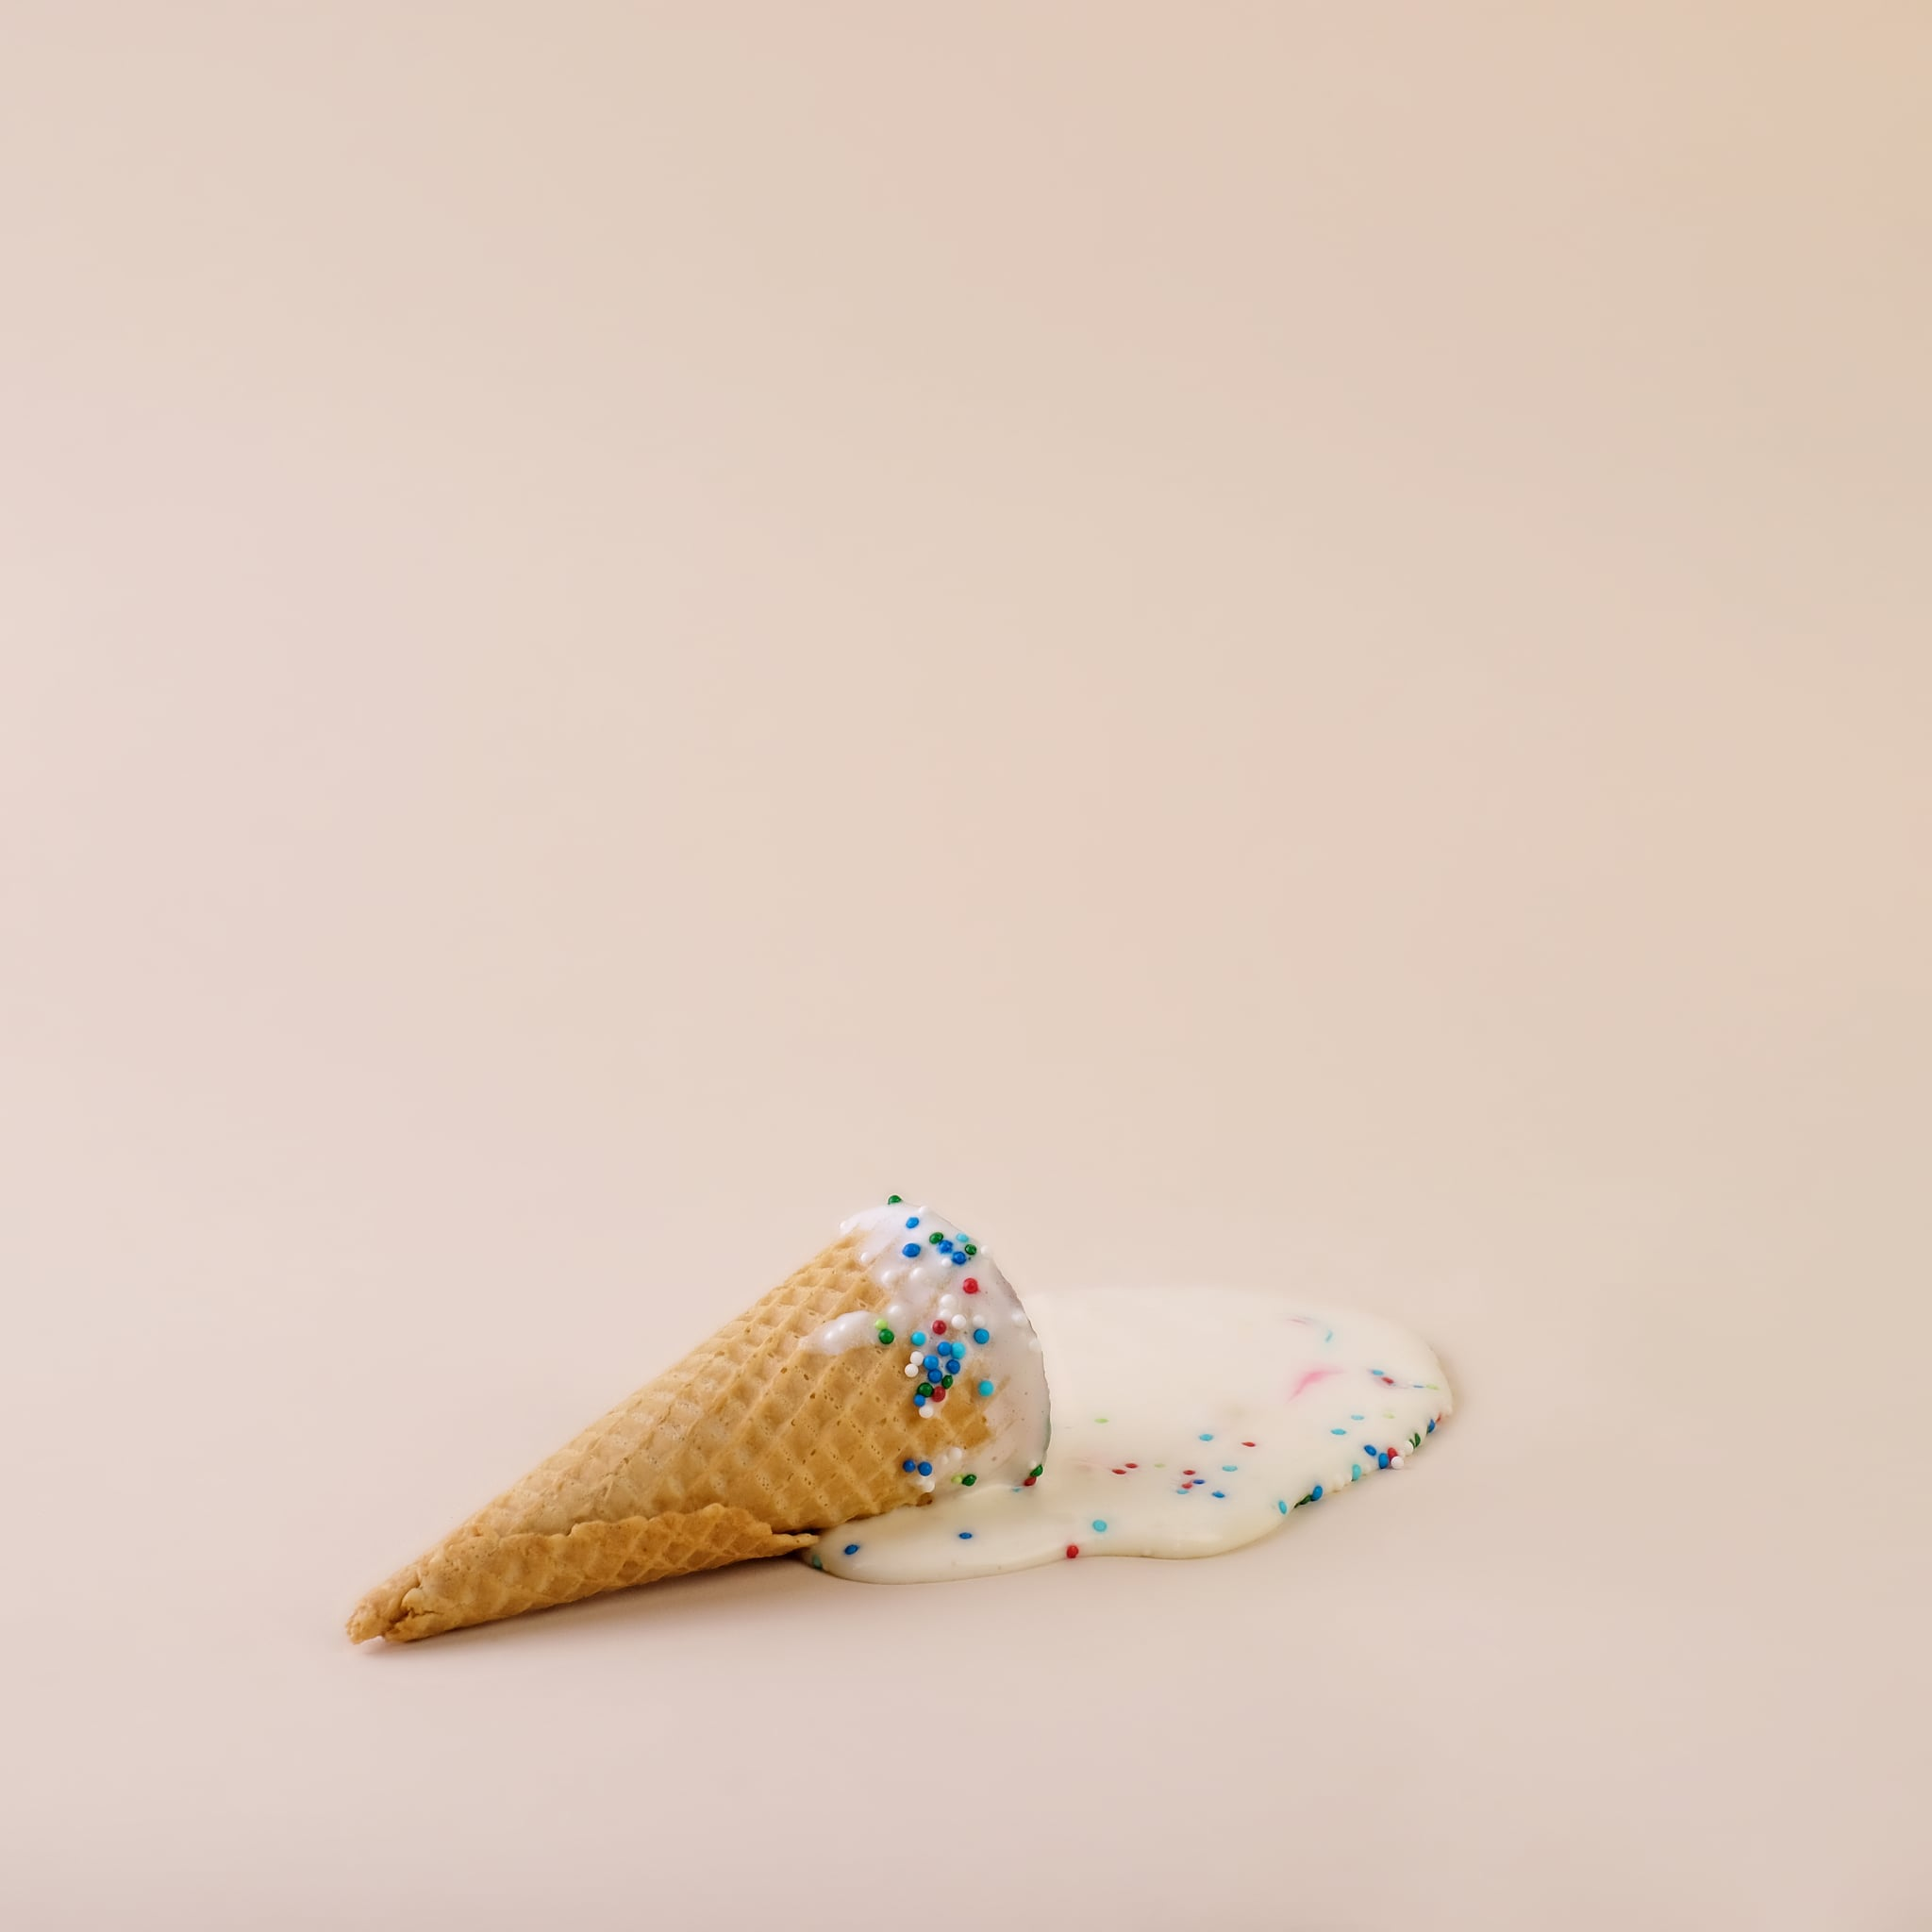 Puddle of melted ice cream with cone and sprinkles.